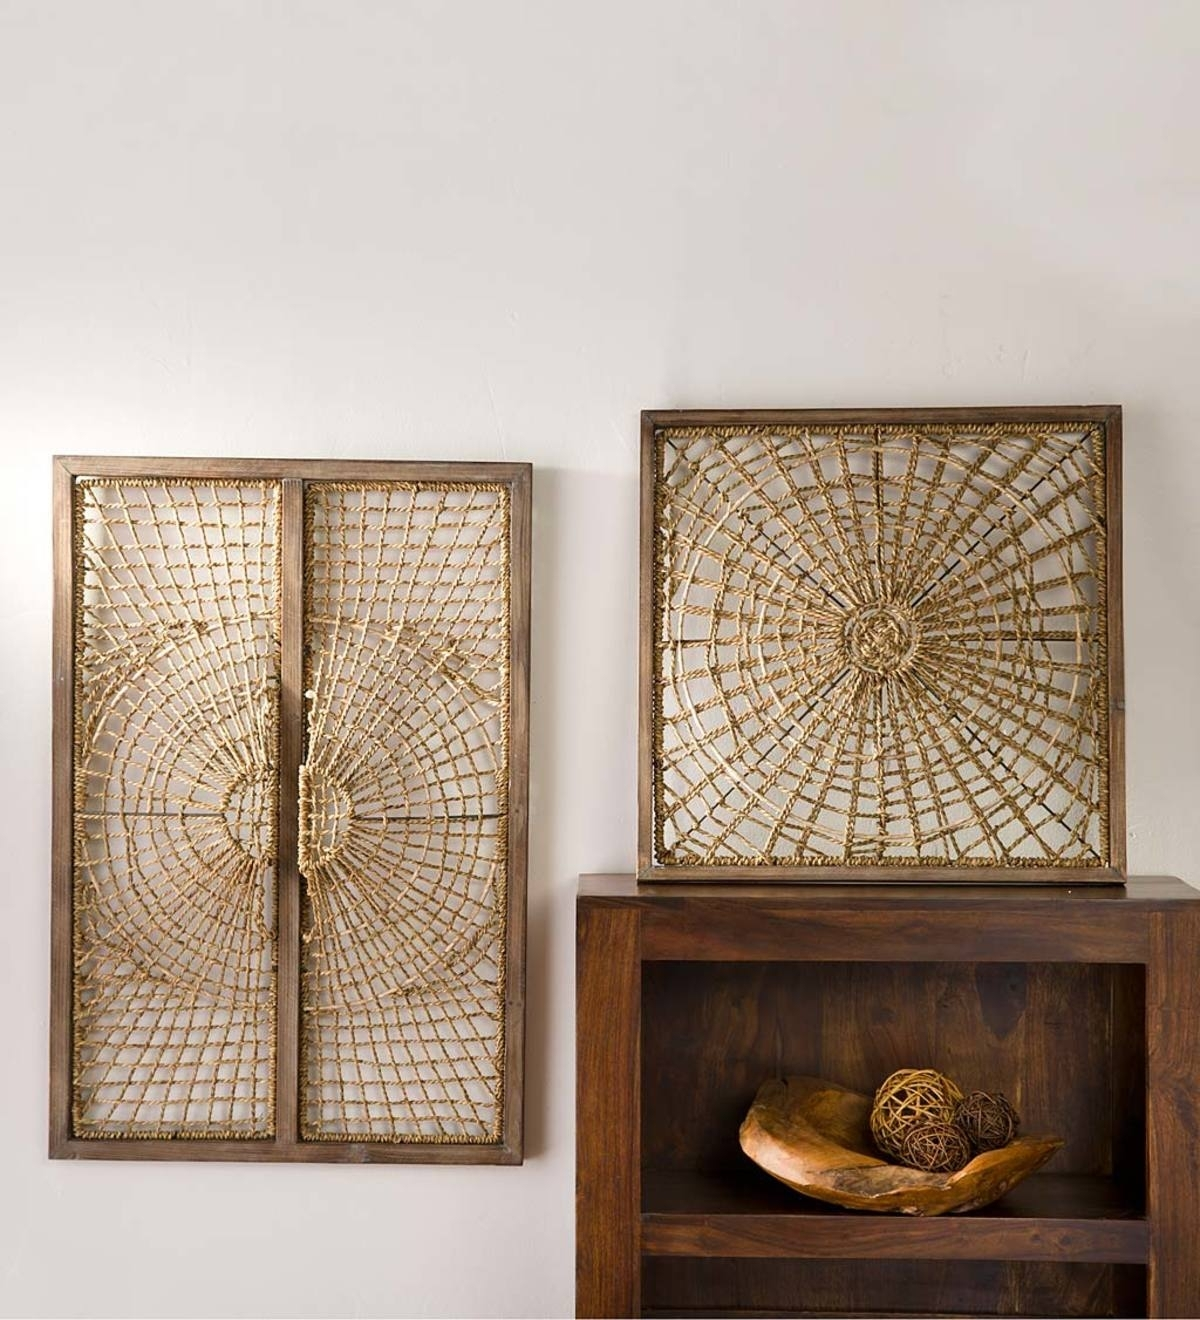 Rattan Wall Decor You Ll Love In 2021 Visualhunt